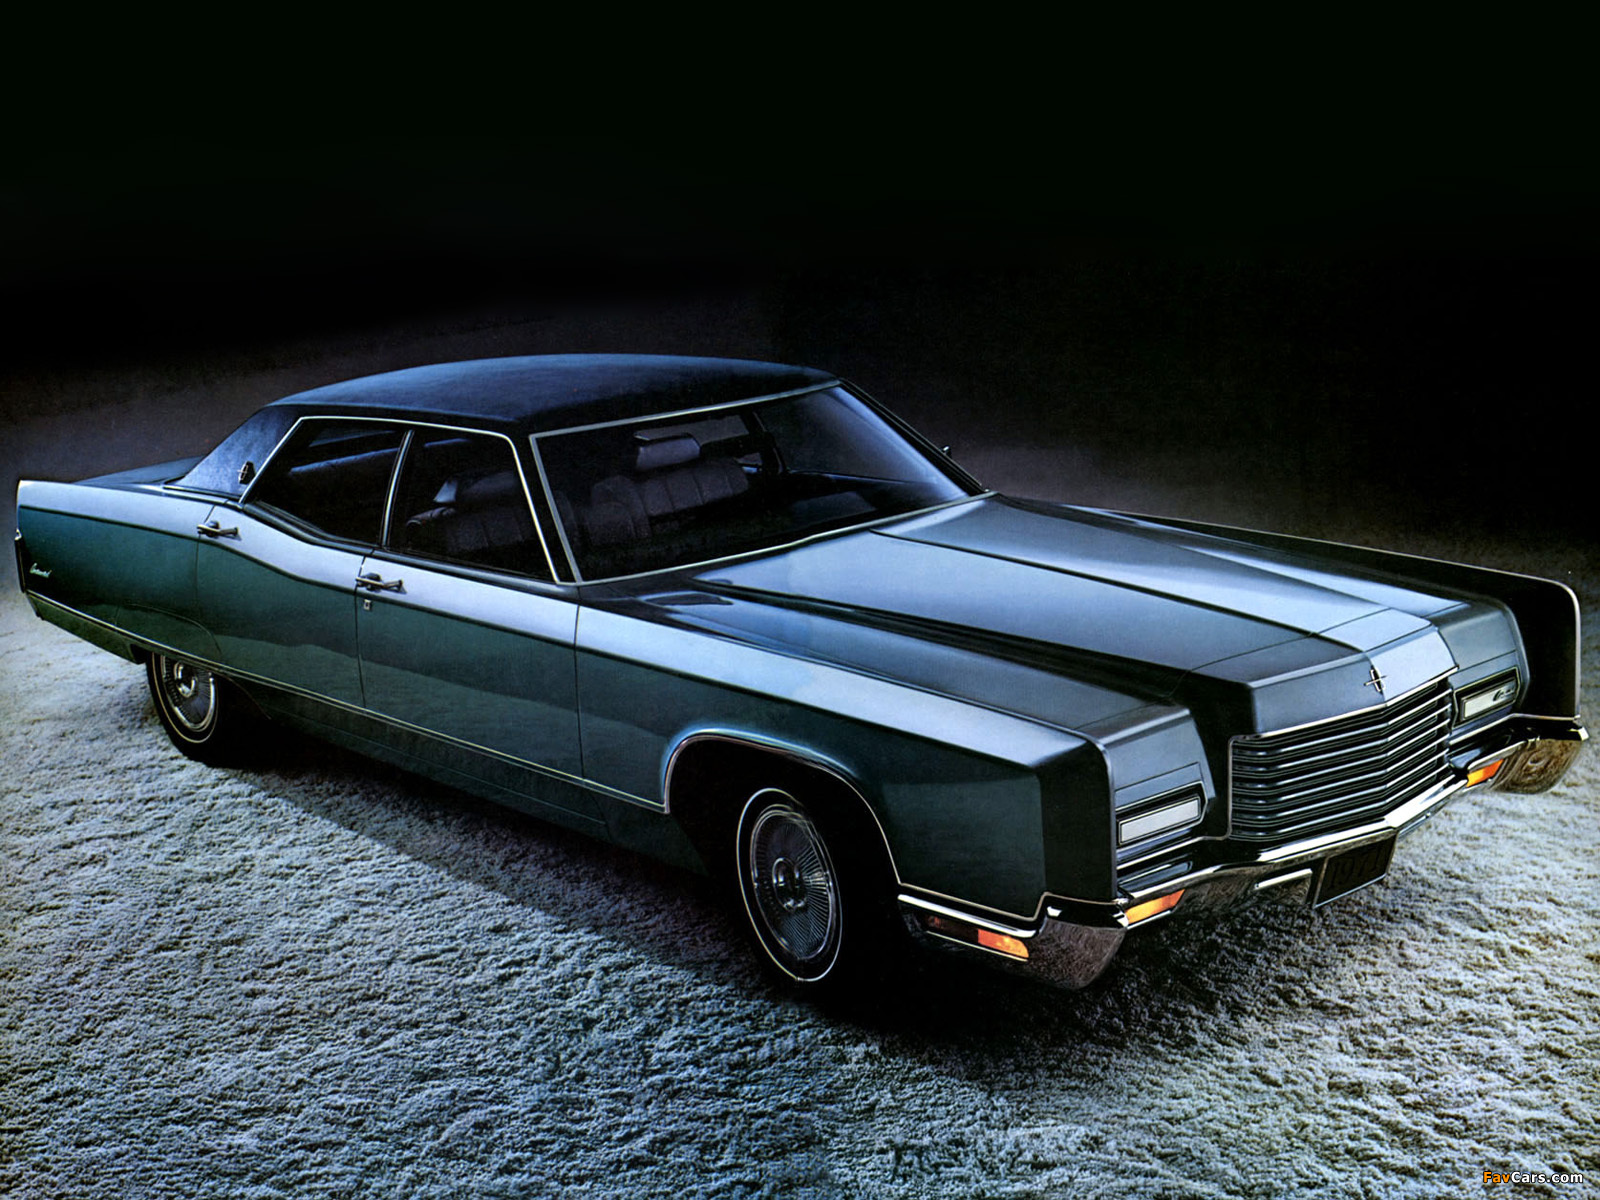 a 1970 lincoln continental and the lemon law stories. Black Bedroom Furniture Sets. Home Design Ideas